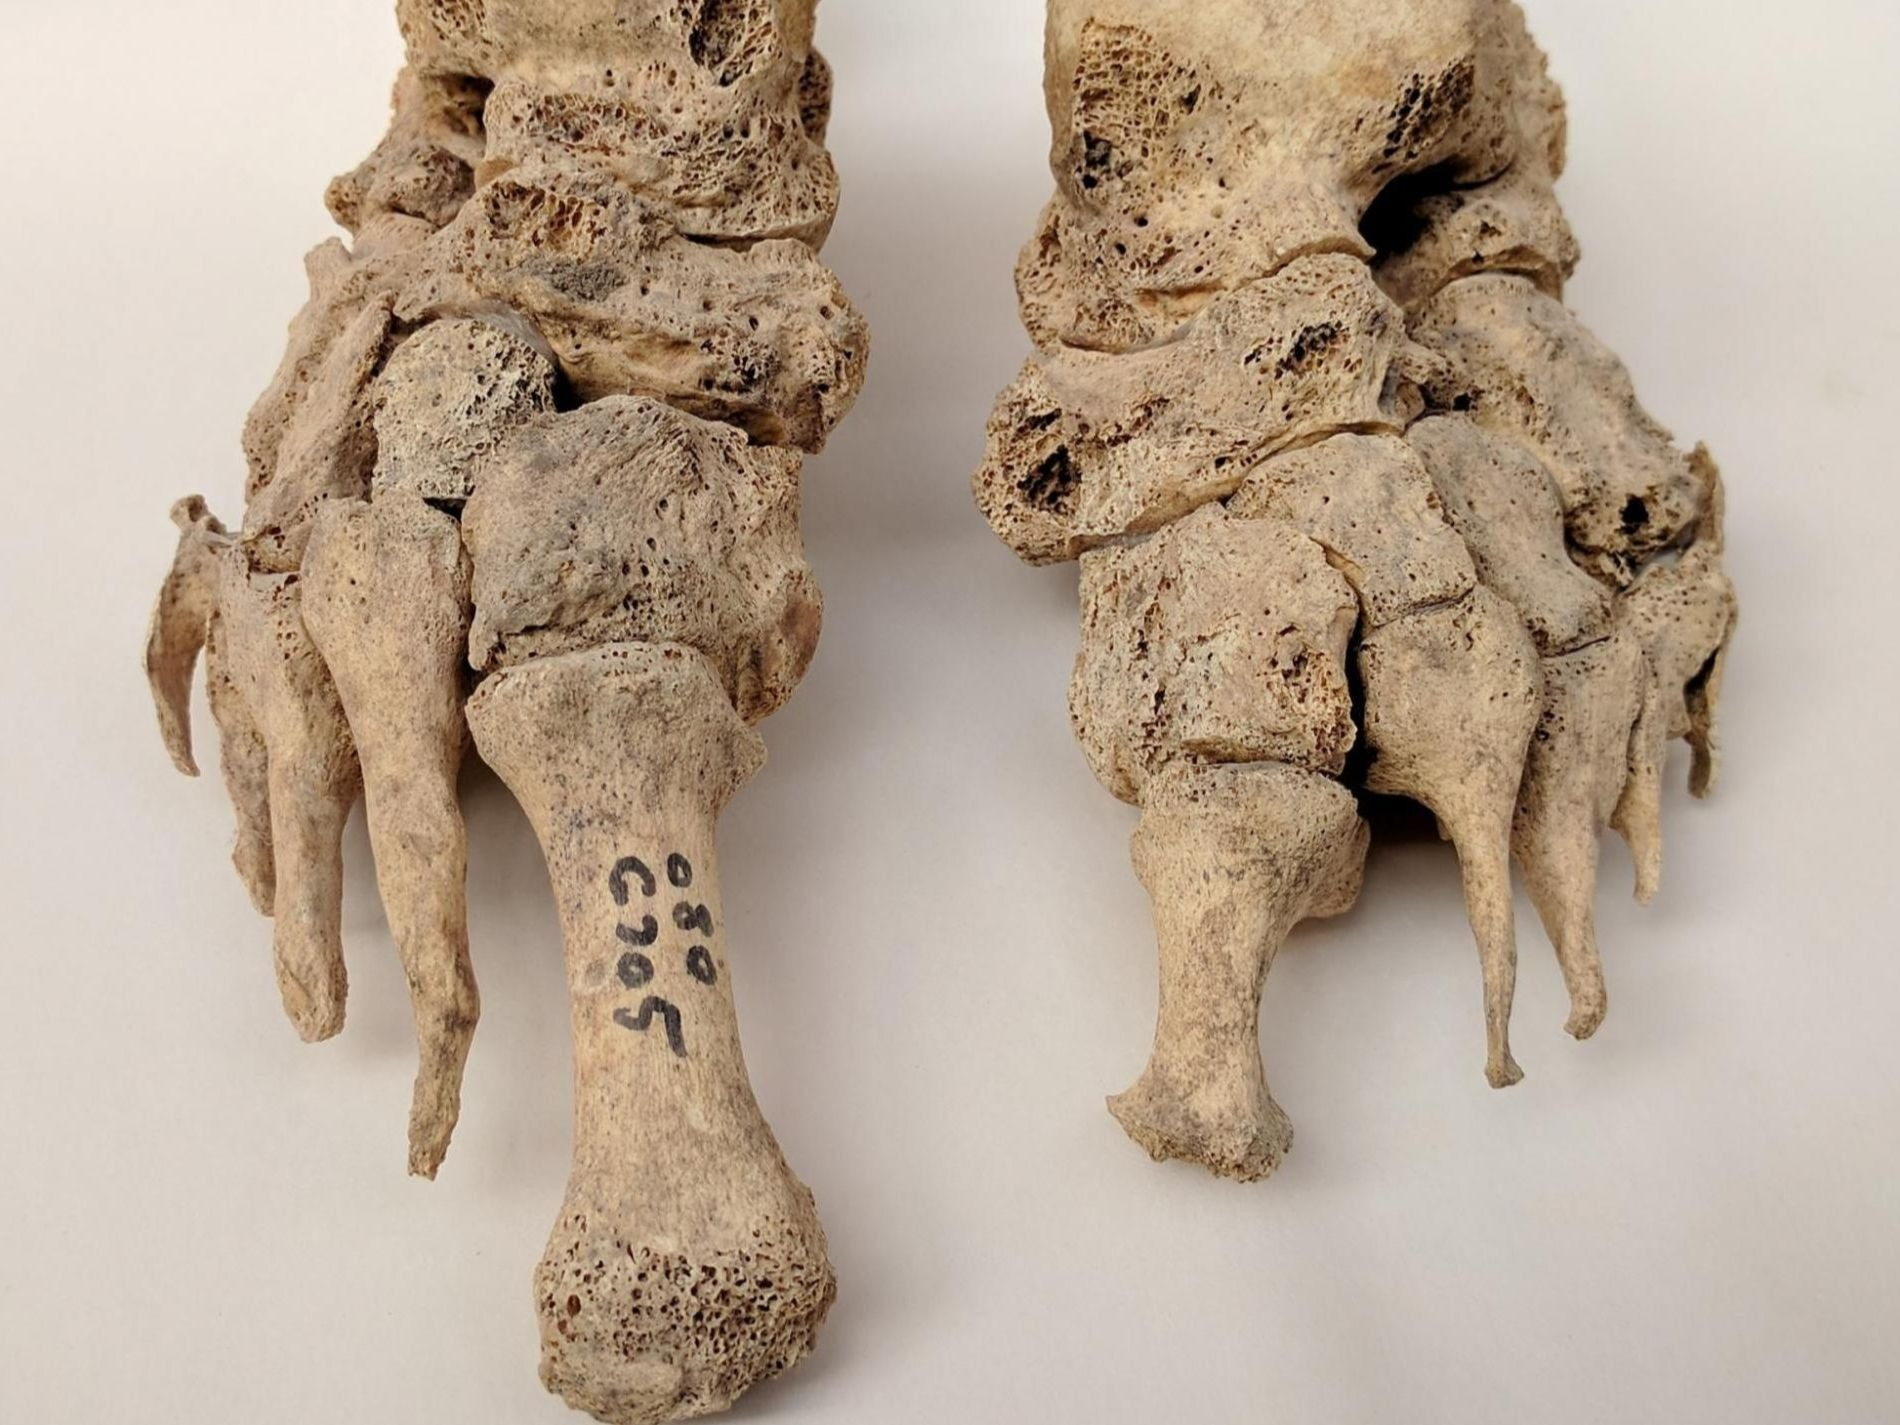 Skeletal remains showing evidence of leprosy